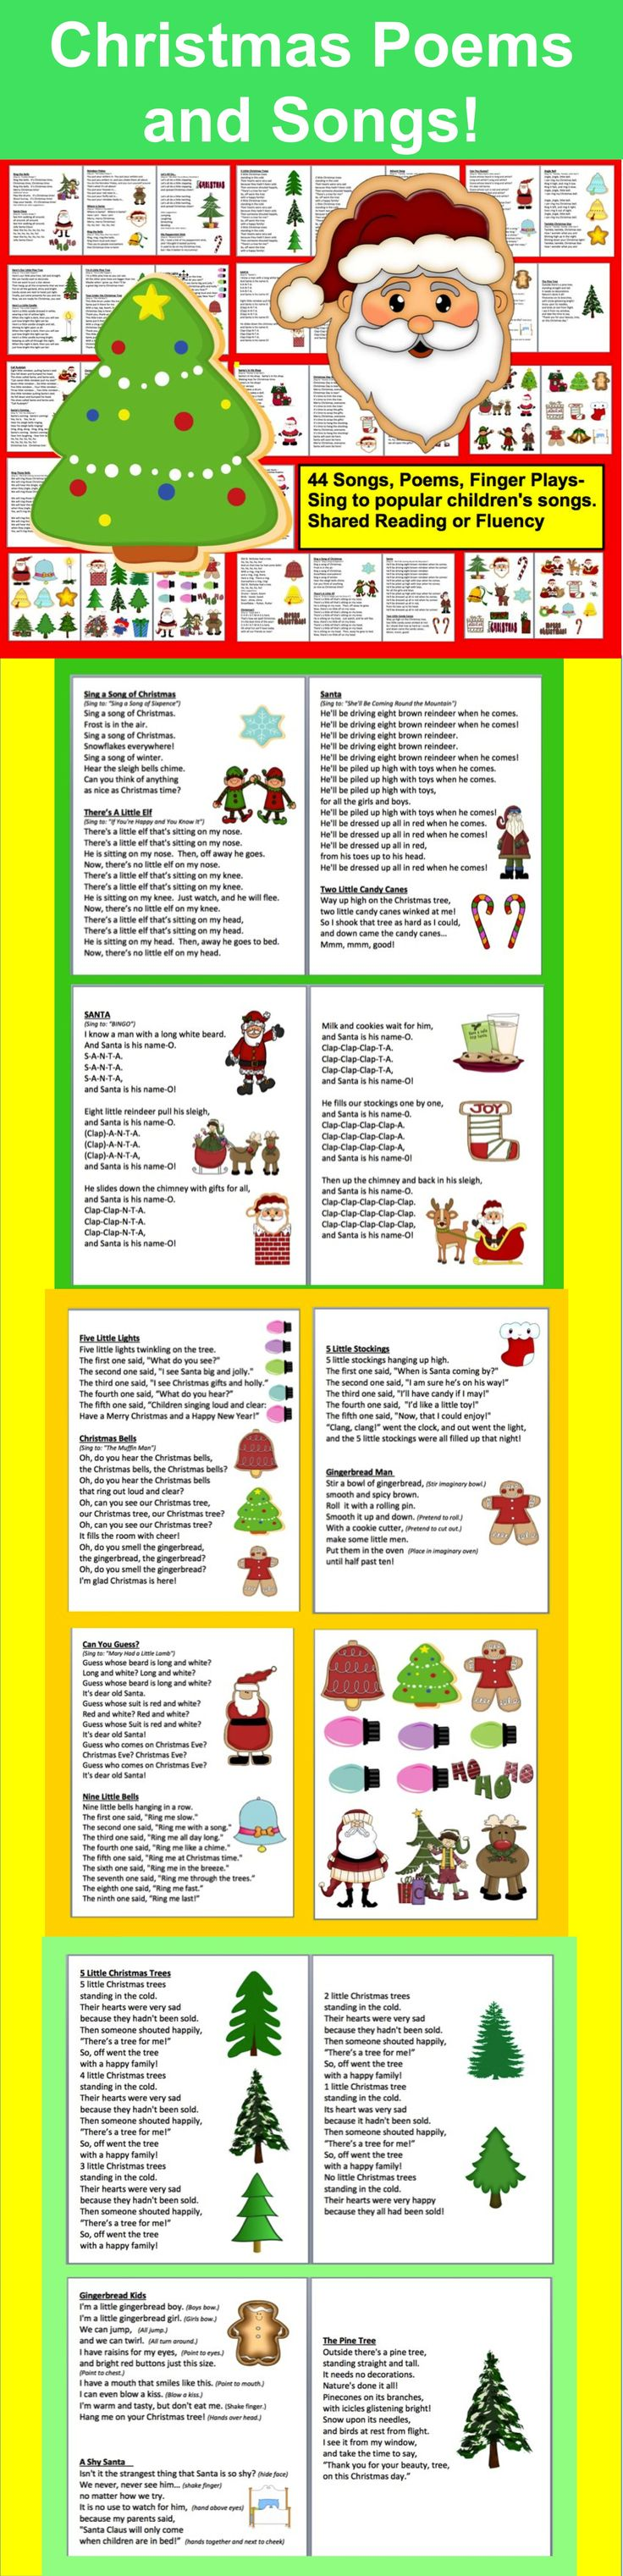 Christmas poems for church programs -  3 00 Christmas Poems Songs Finger Plays And Chants 36 Page File All